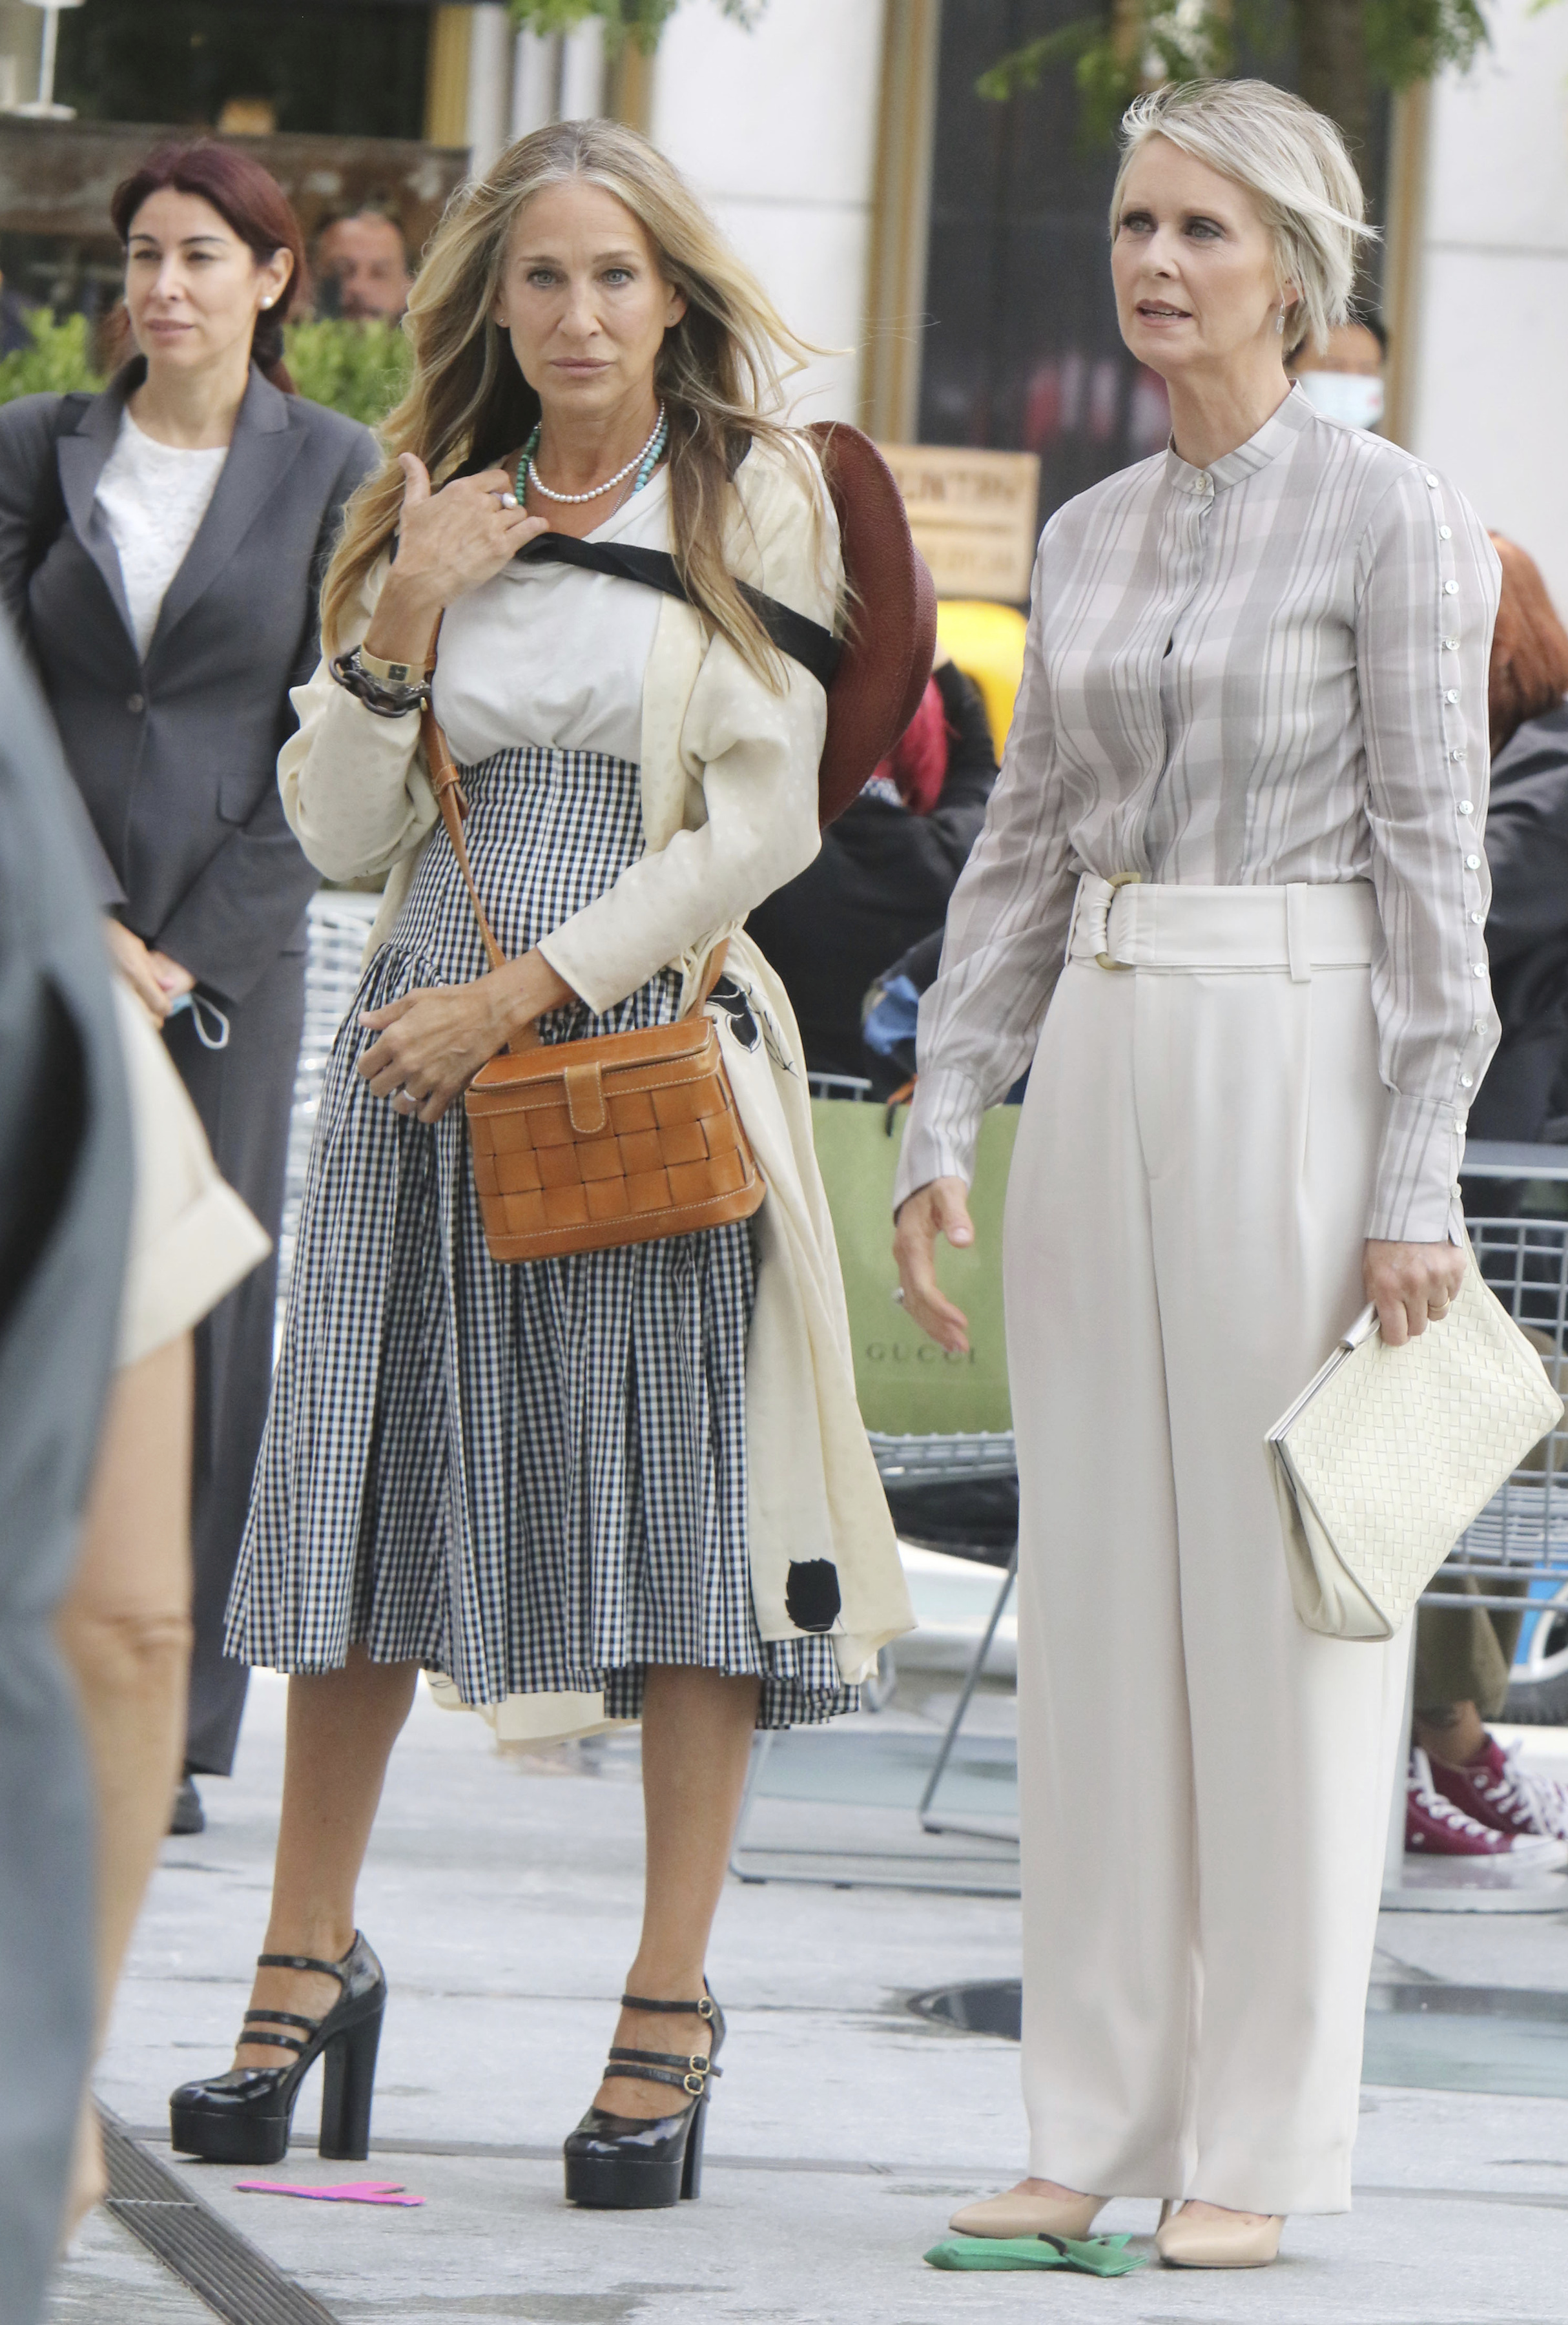 Sarah Jessica Parker and Cynthia Nixon as Carrie Bradshaw and Miranda Hobbes in the Sex and the City Reboot filming